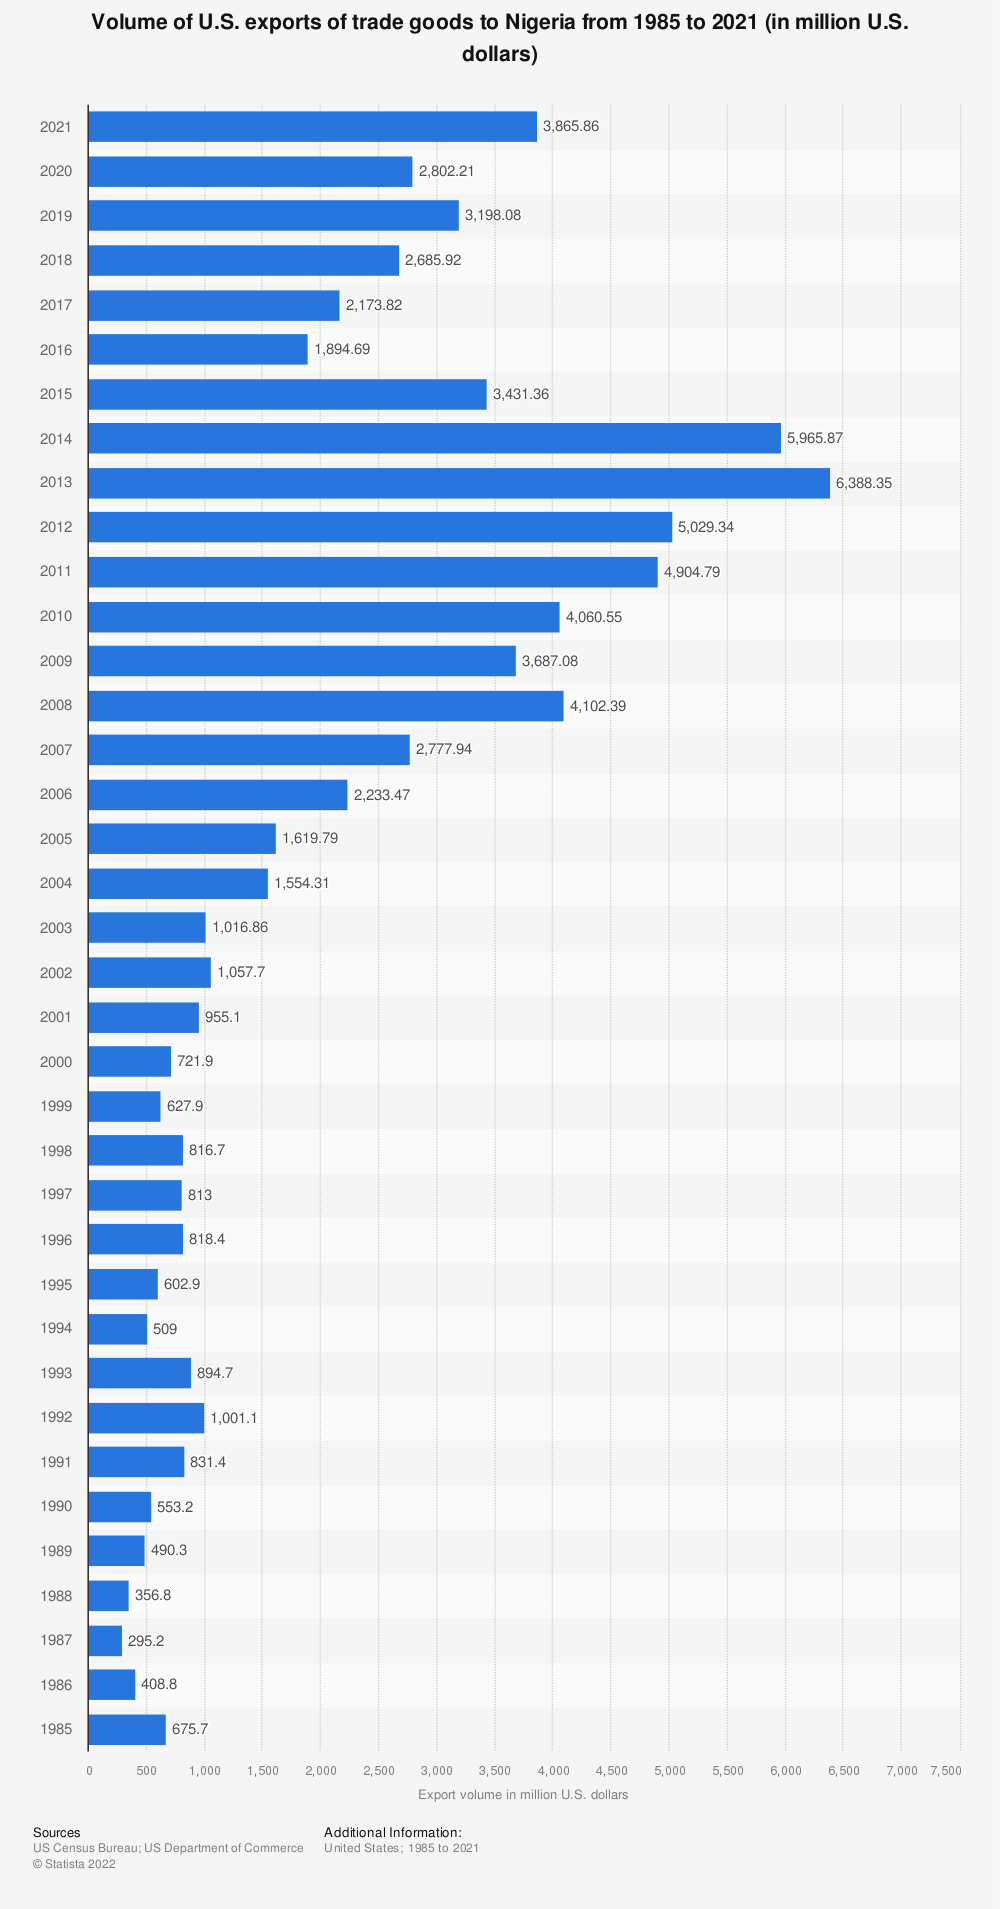 Statistic: Volume of U.S. exports of trade goods to Nigeria from 1985 to 2020 (in million U.S. dollars) | Statista